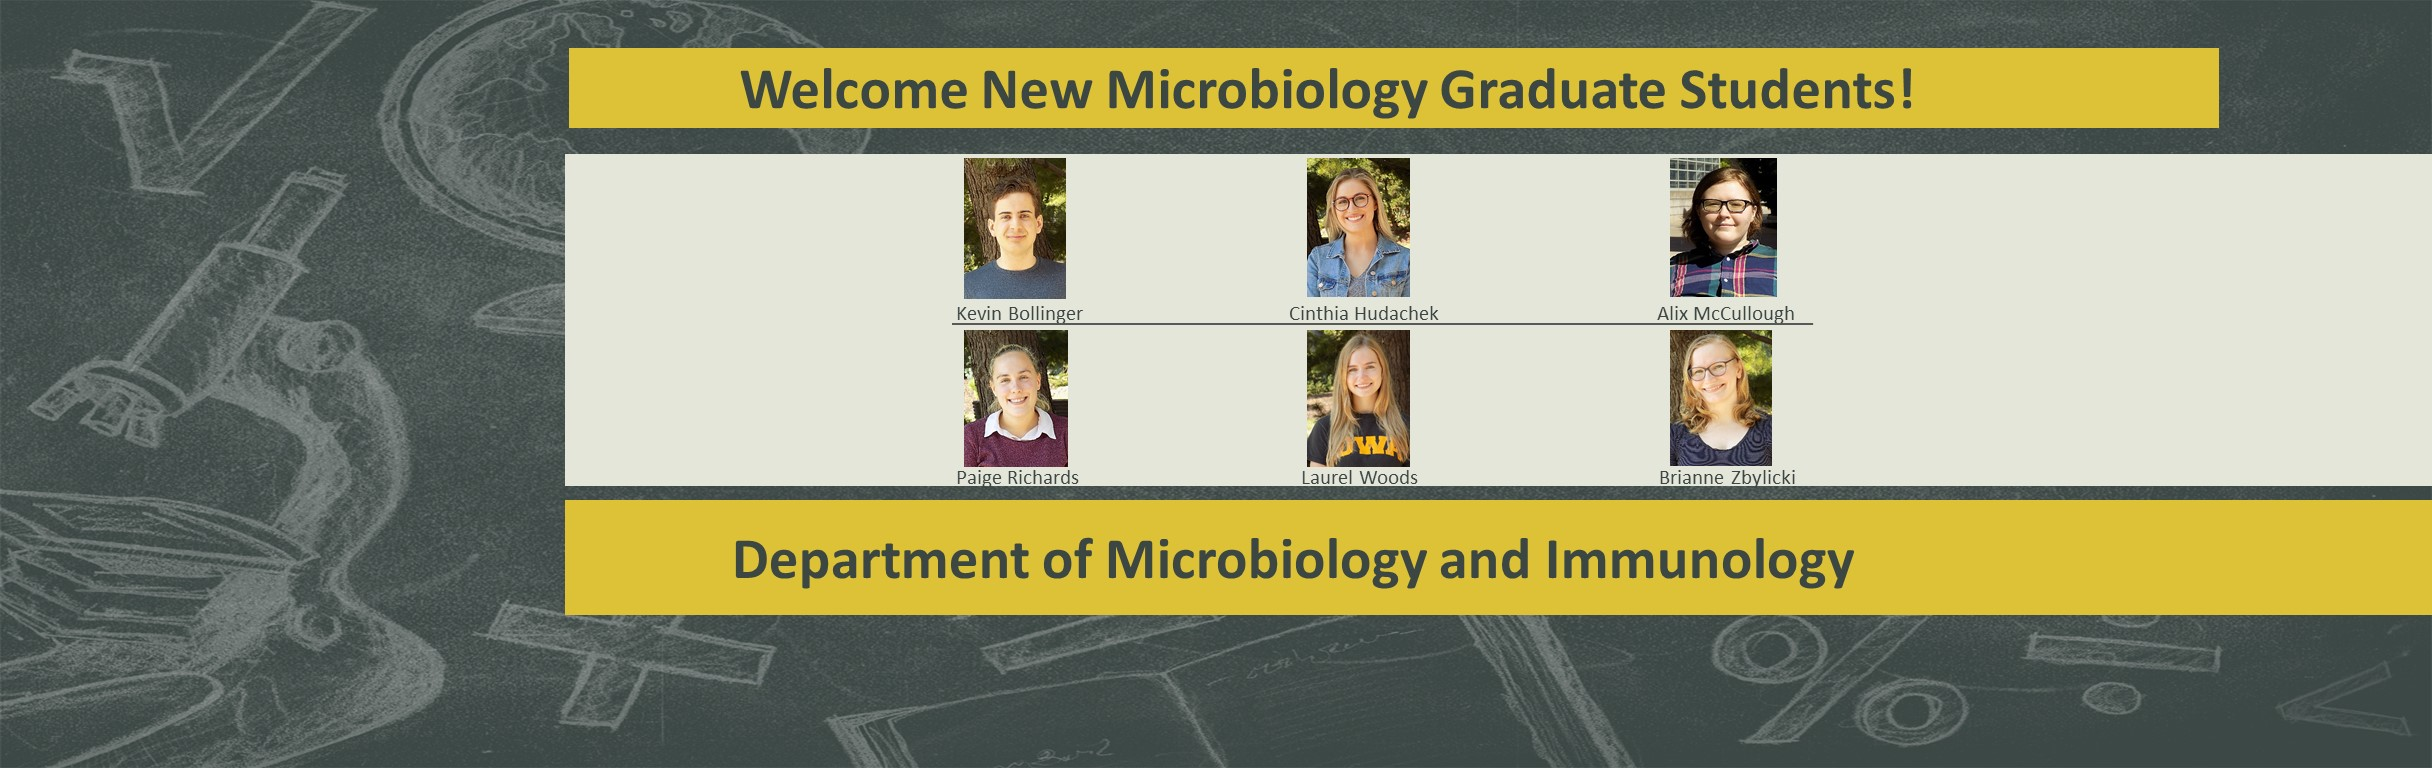 Welocme New Microbiology Students 20.21